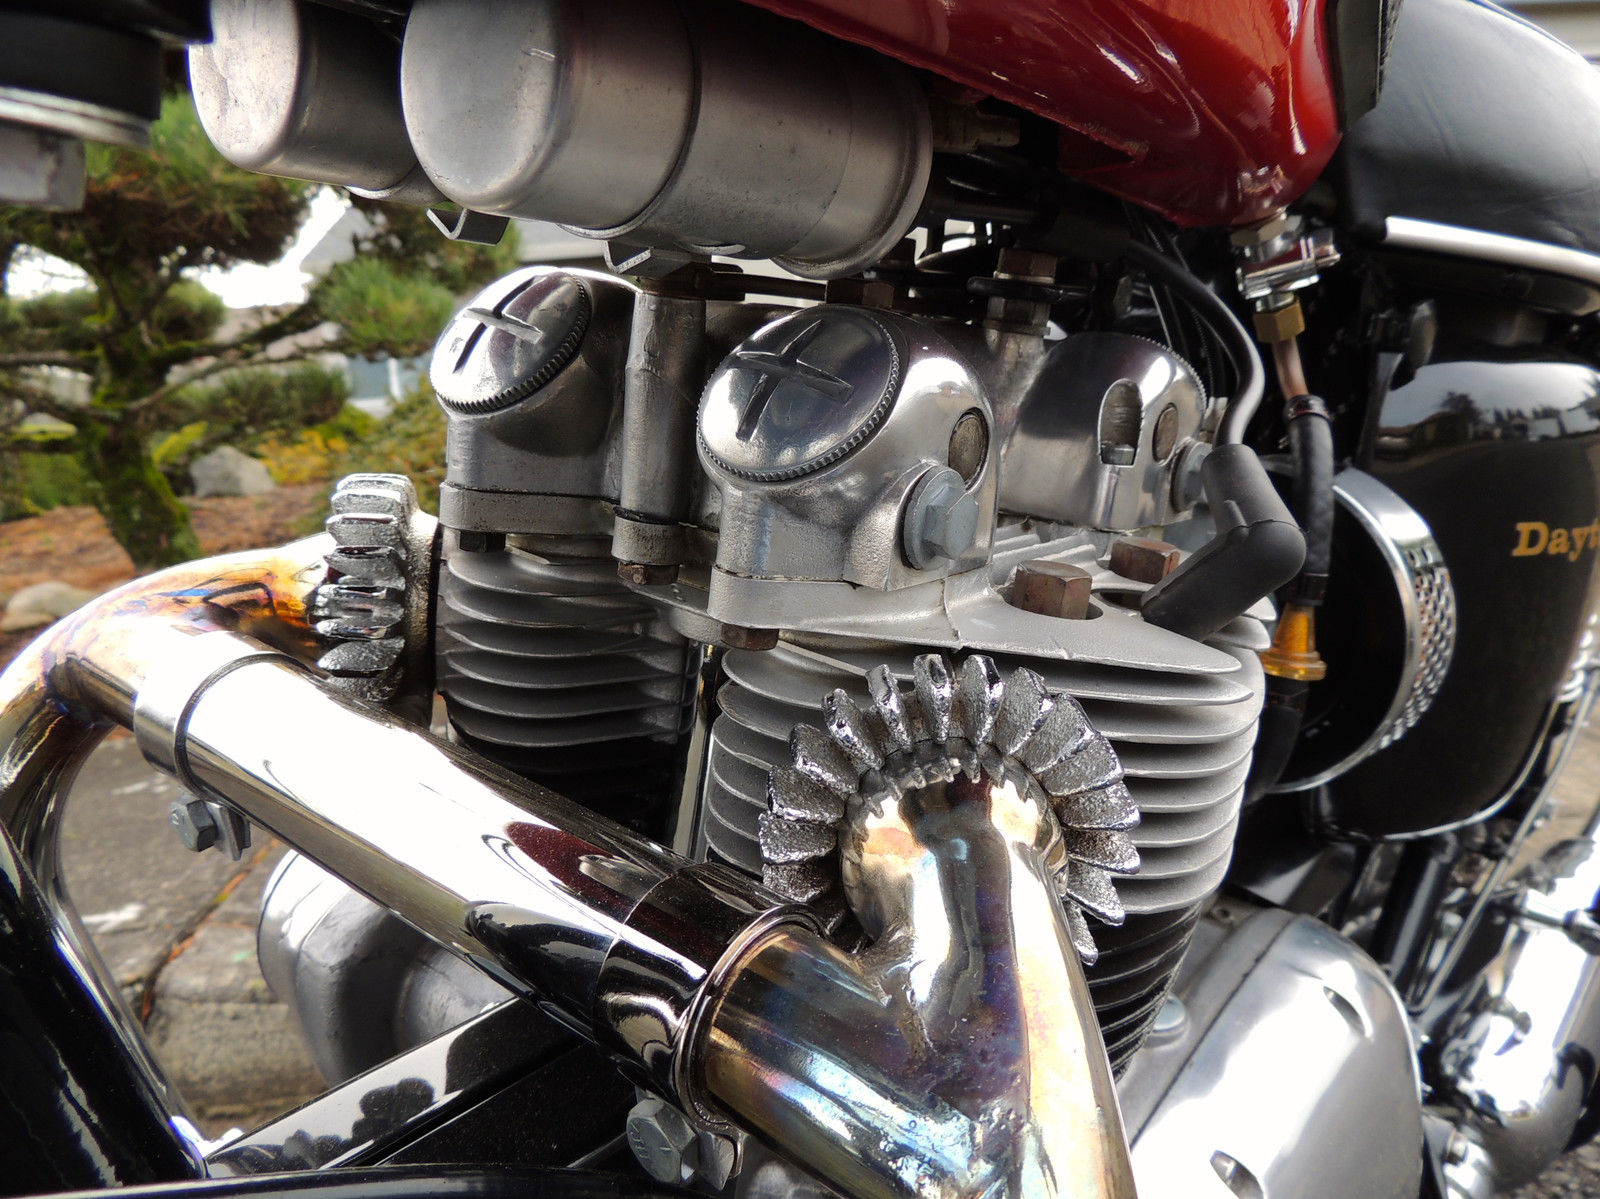 Triumph Daytona - 1973 - Exhausts, Cylinder Head, Covers and Cylinder Head.